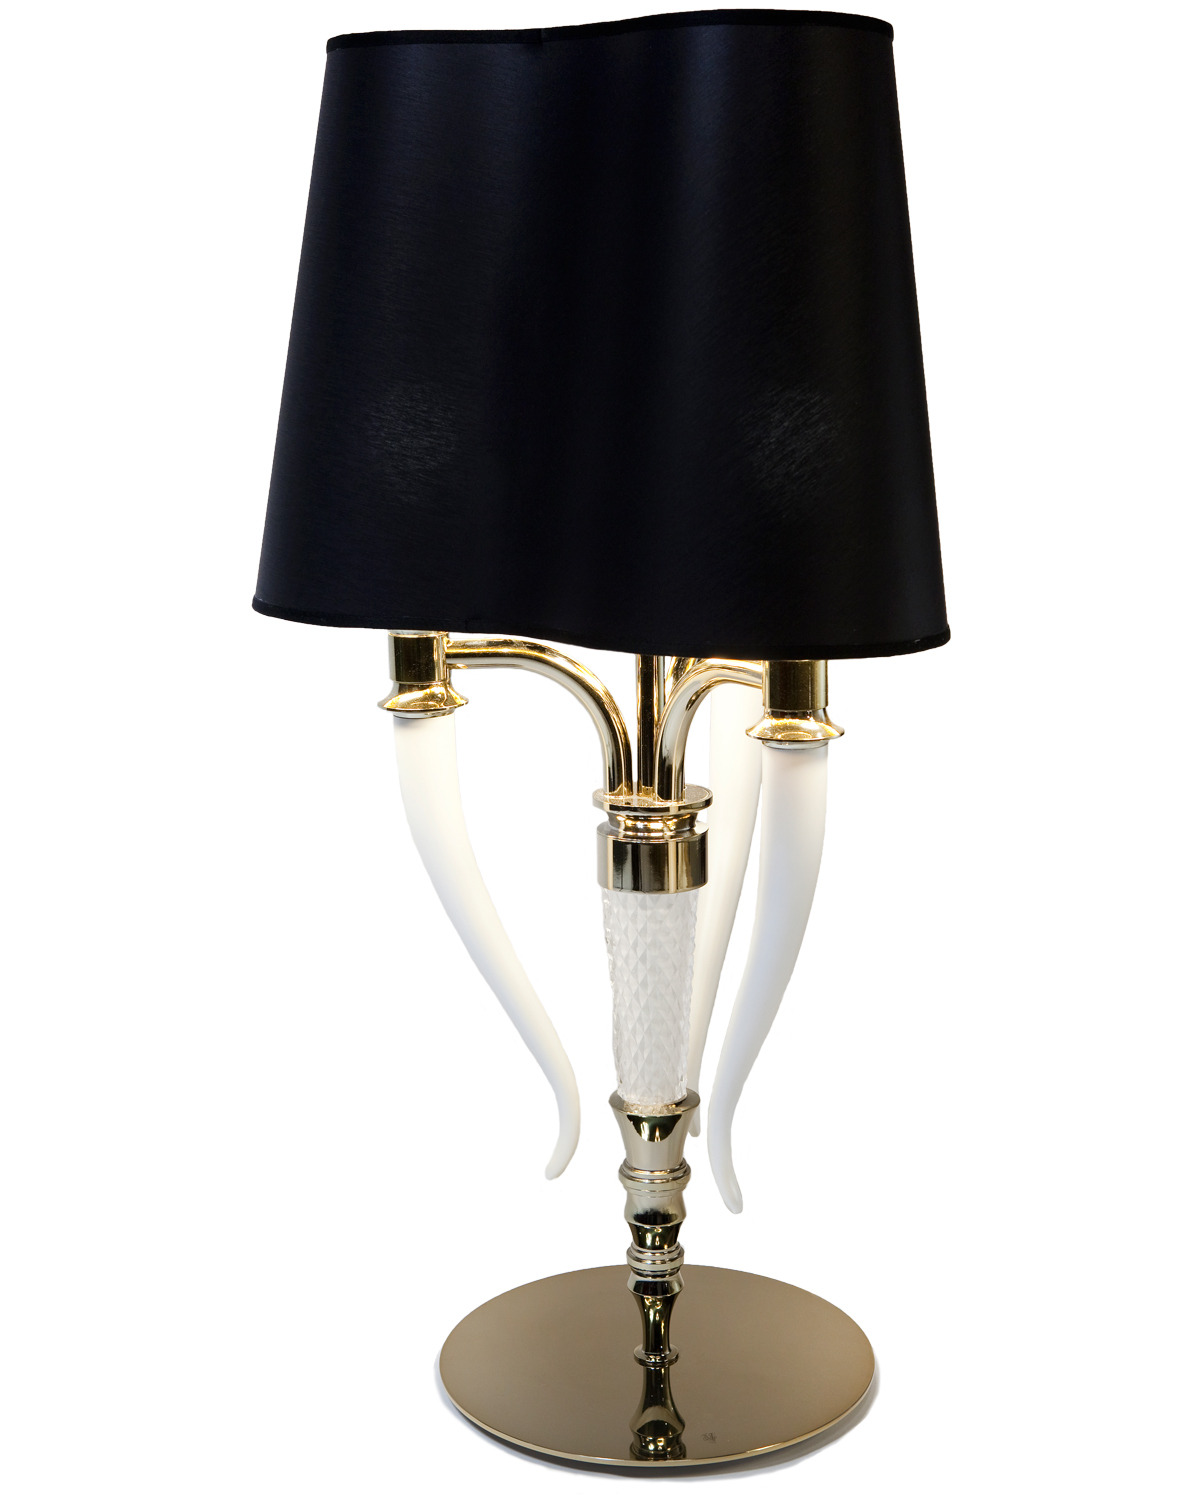 Visionnaire online shop table lamp lampshade in black silk visionnaire online shop table lamp lampshade in black silk inside gold aloadofball Image collections